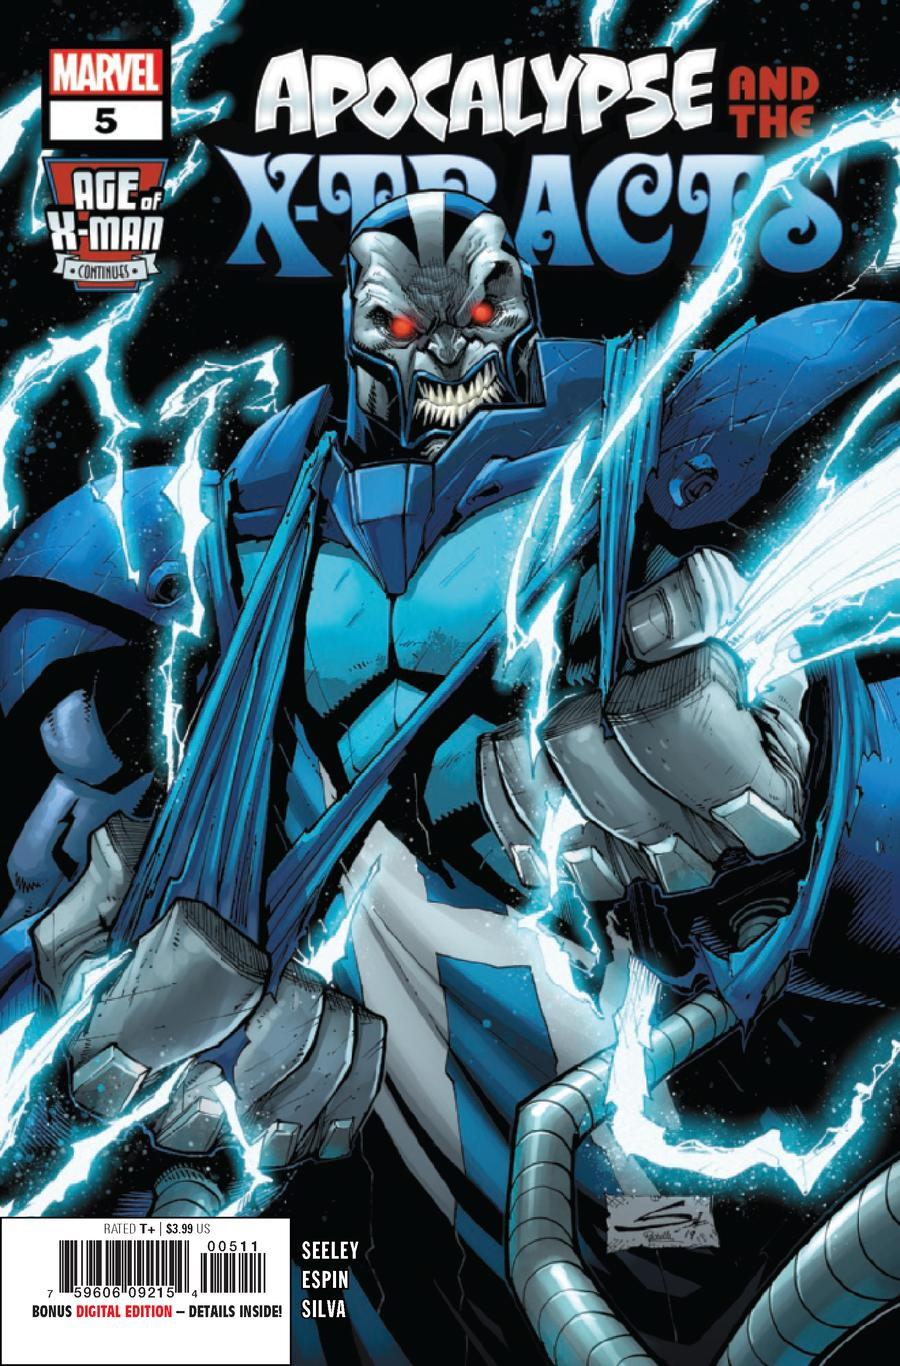 Age Of X-Man Apocalypse And The X-Tracts #5